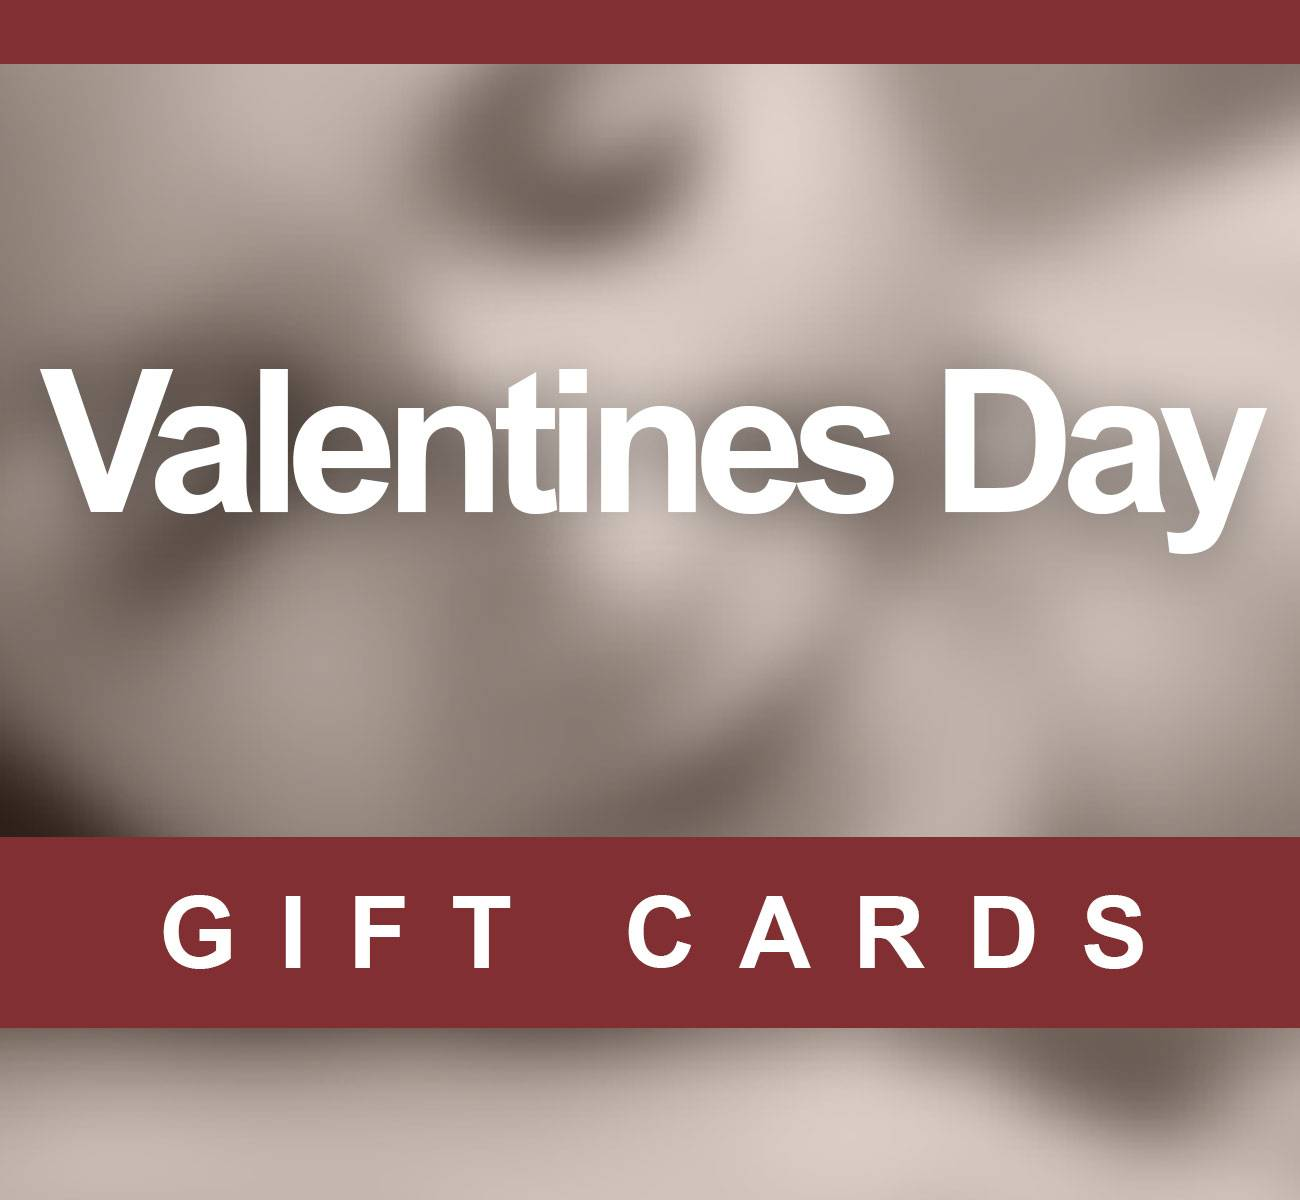 Valentine's Day Gift Cards